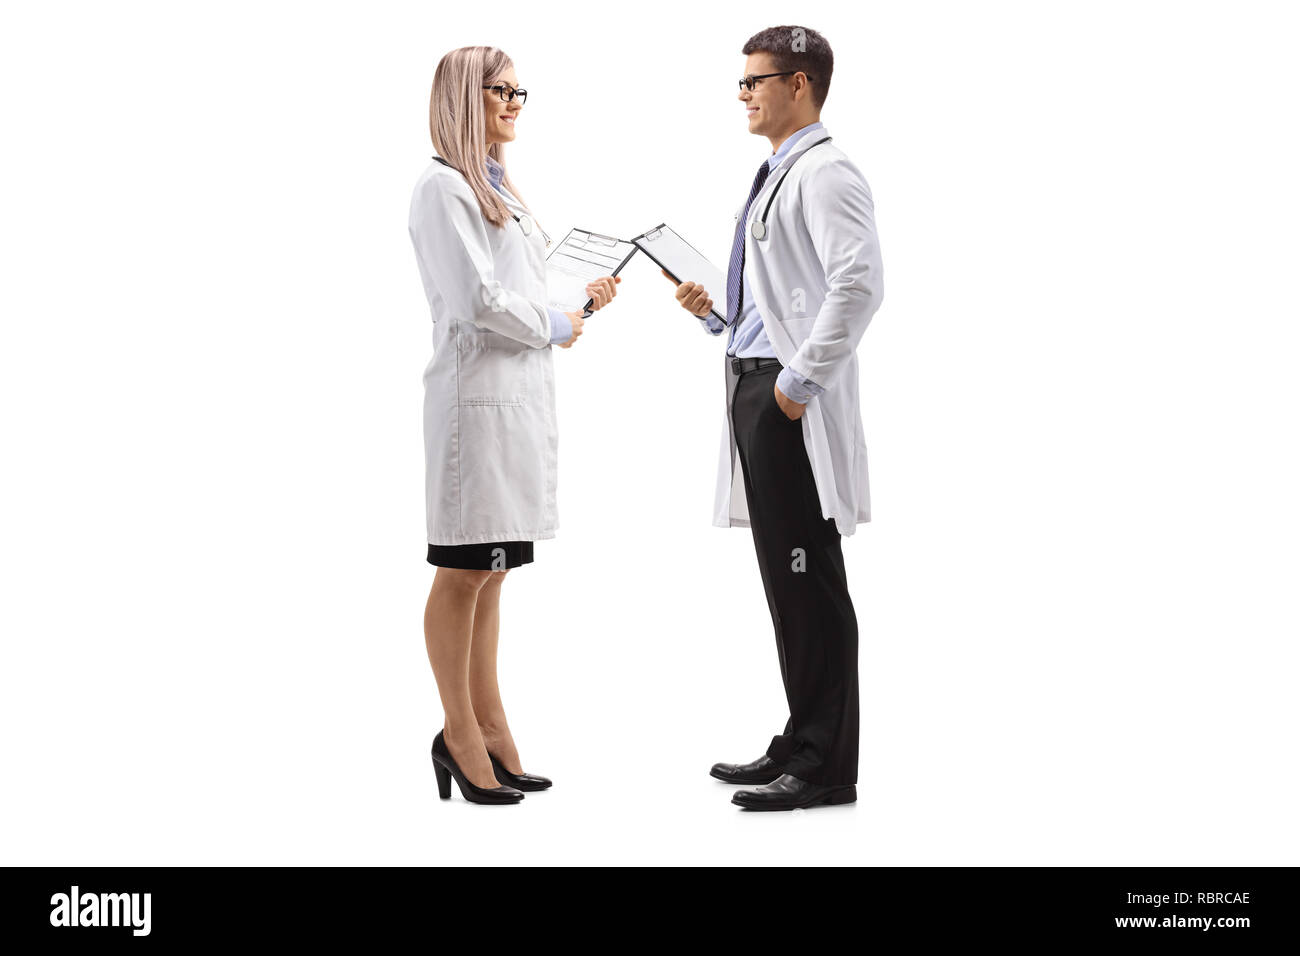 Full length profile shot of a female and male doctor in a lab coat talking isolated on white background - Stock Image